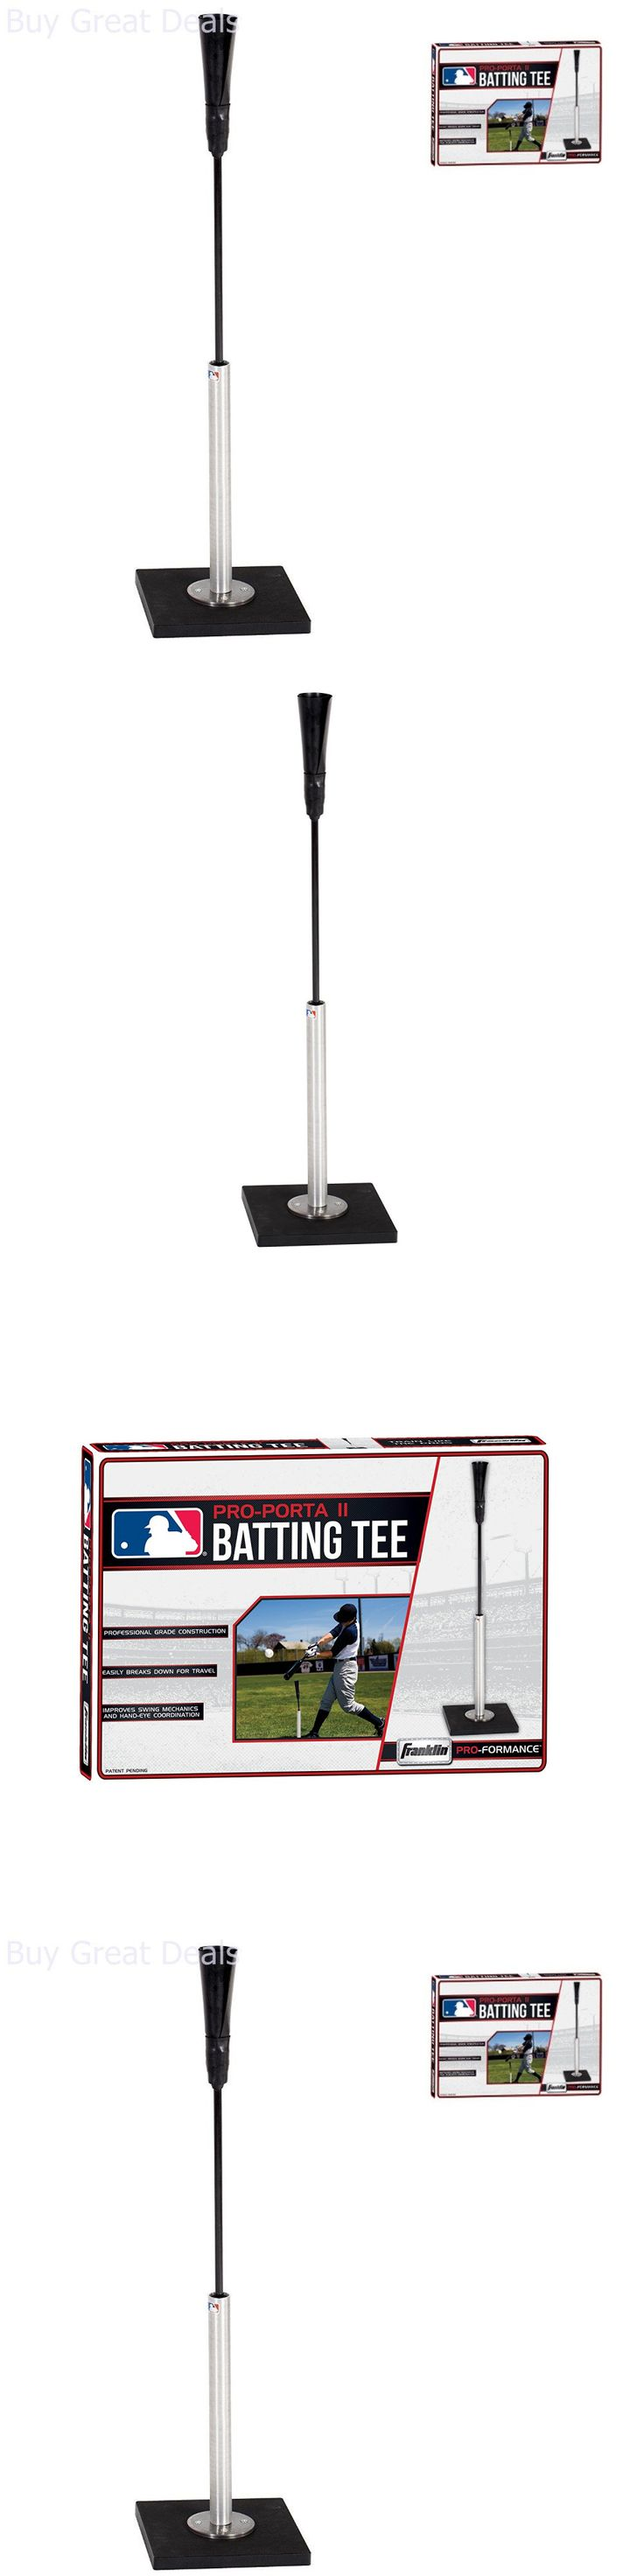 Batting Tees 108139: Baseball Batting Tee Portable Tee 37In Baseball Hitting Practice Training Aids -> BUY IT NOW ONLY: $66.37 on eBay!